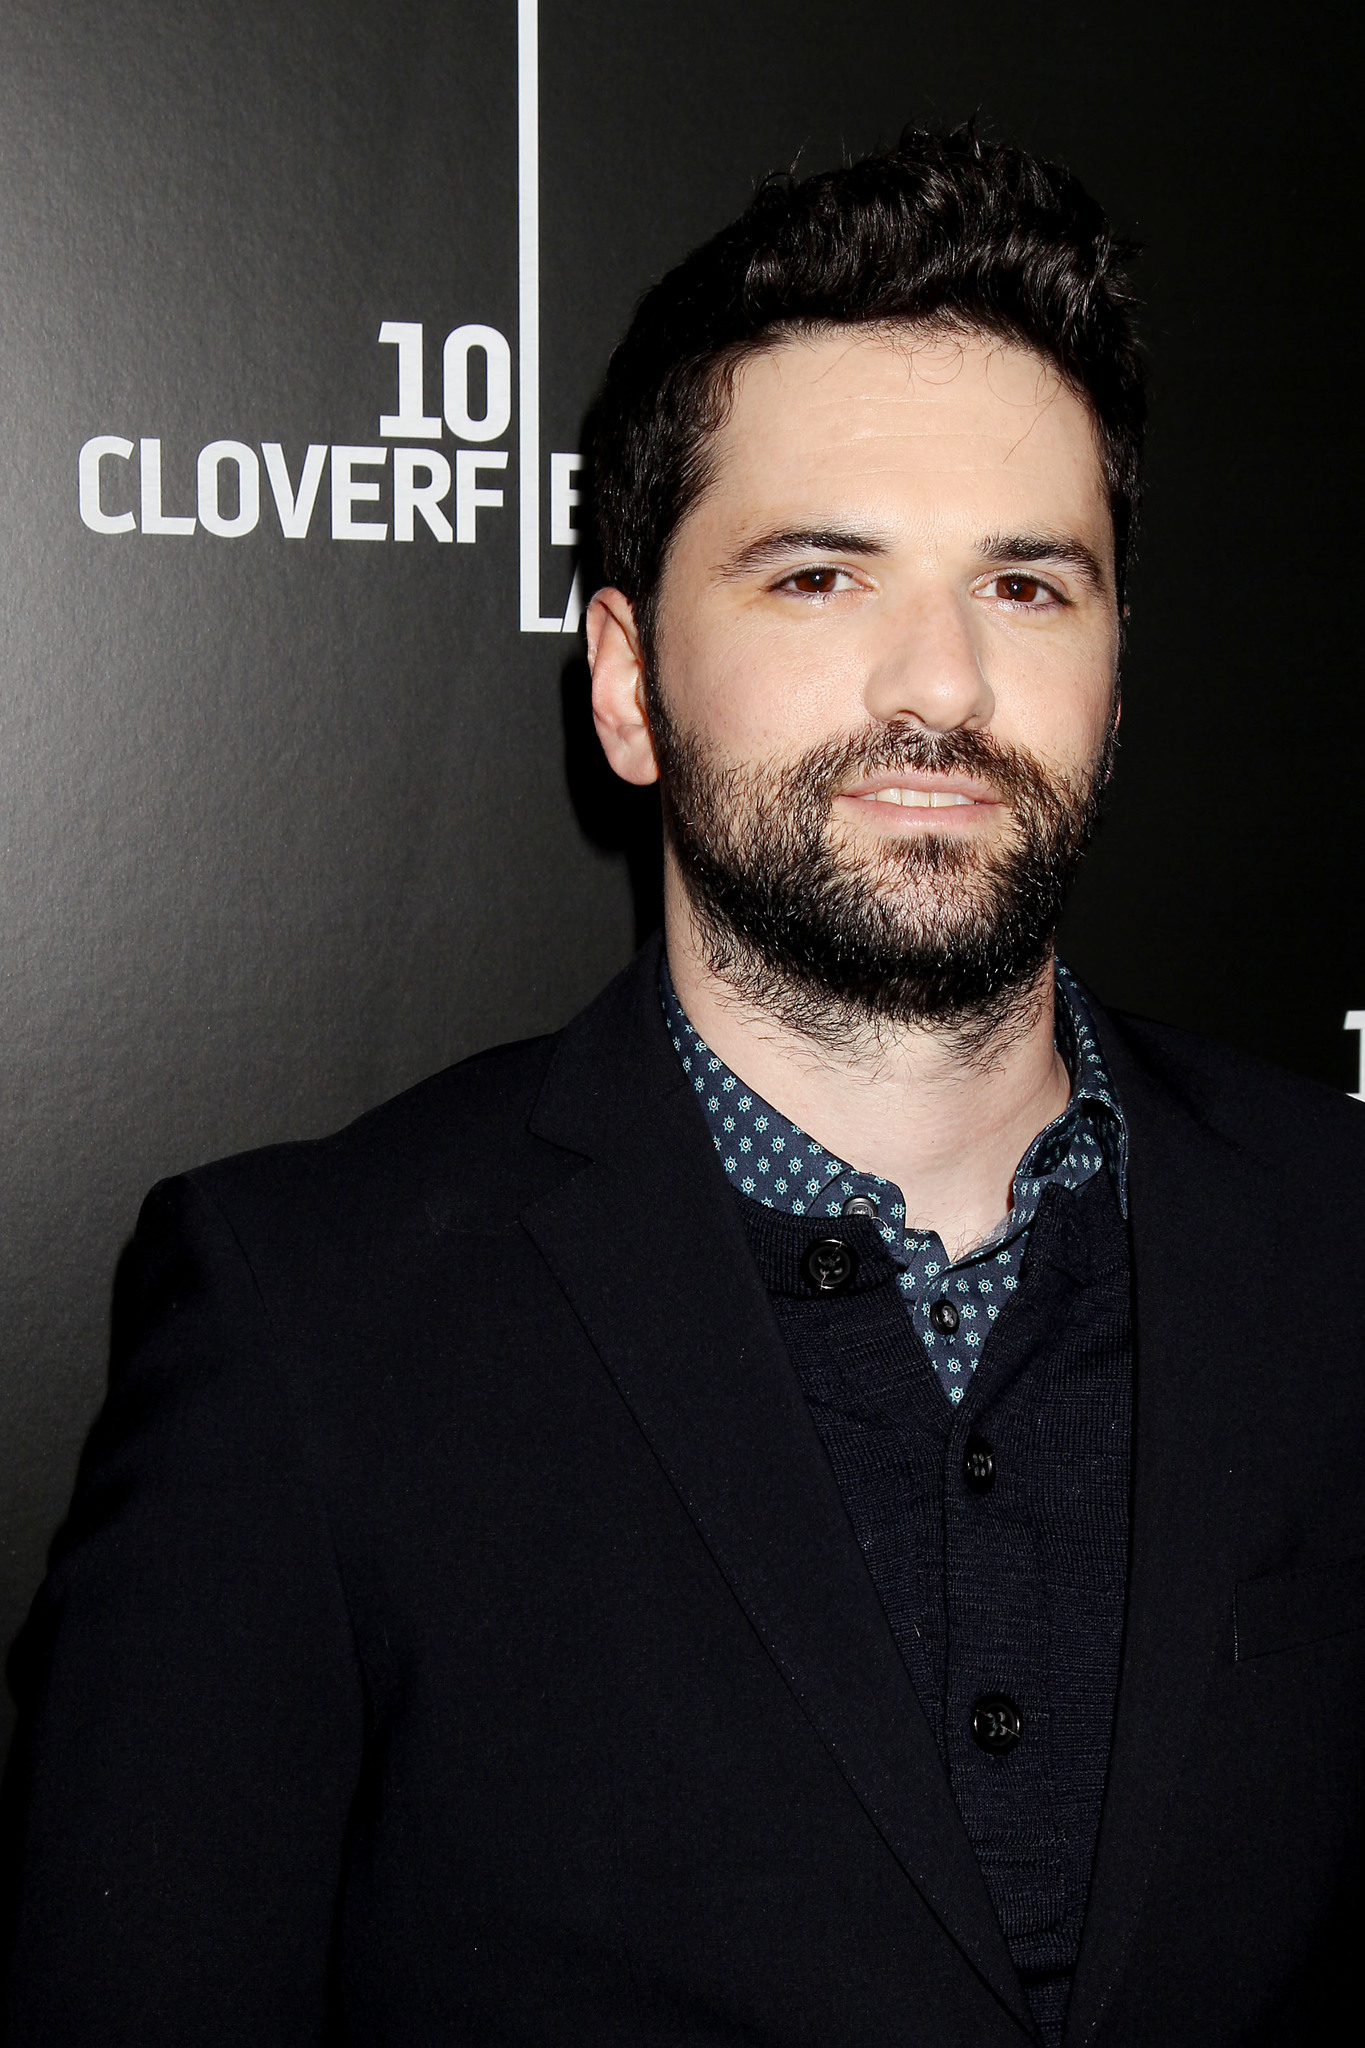 Dan Trachtenberg at an event for 10 Cloverfield Lane (2016)